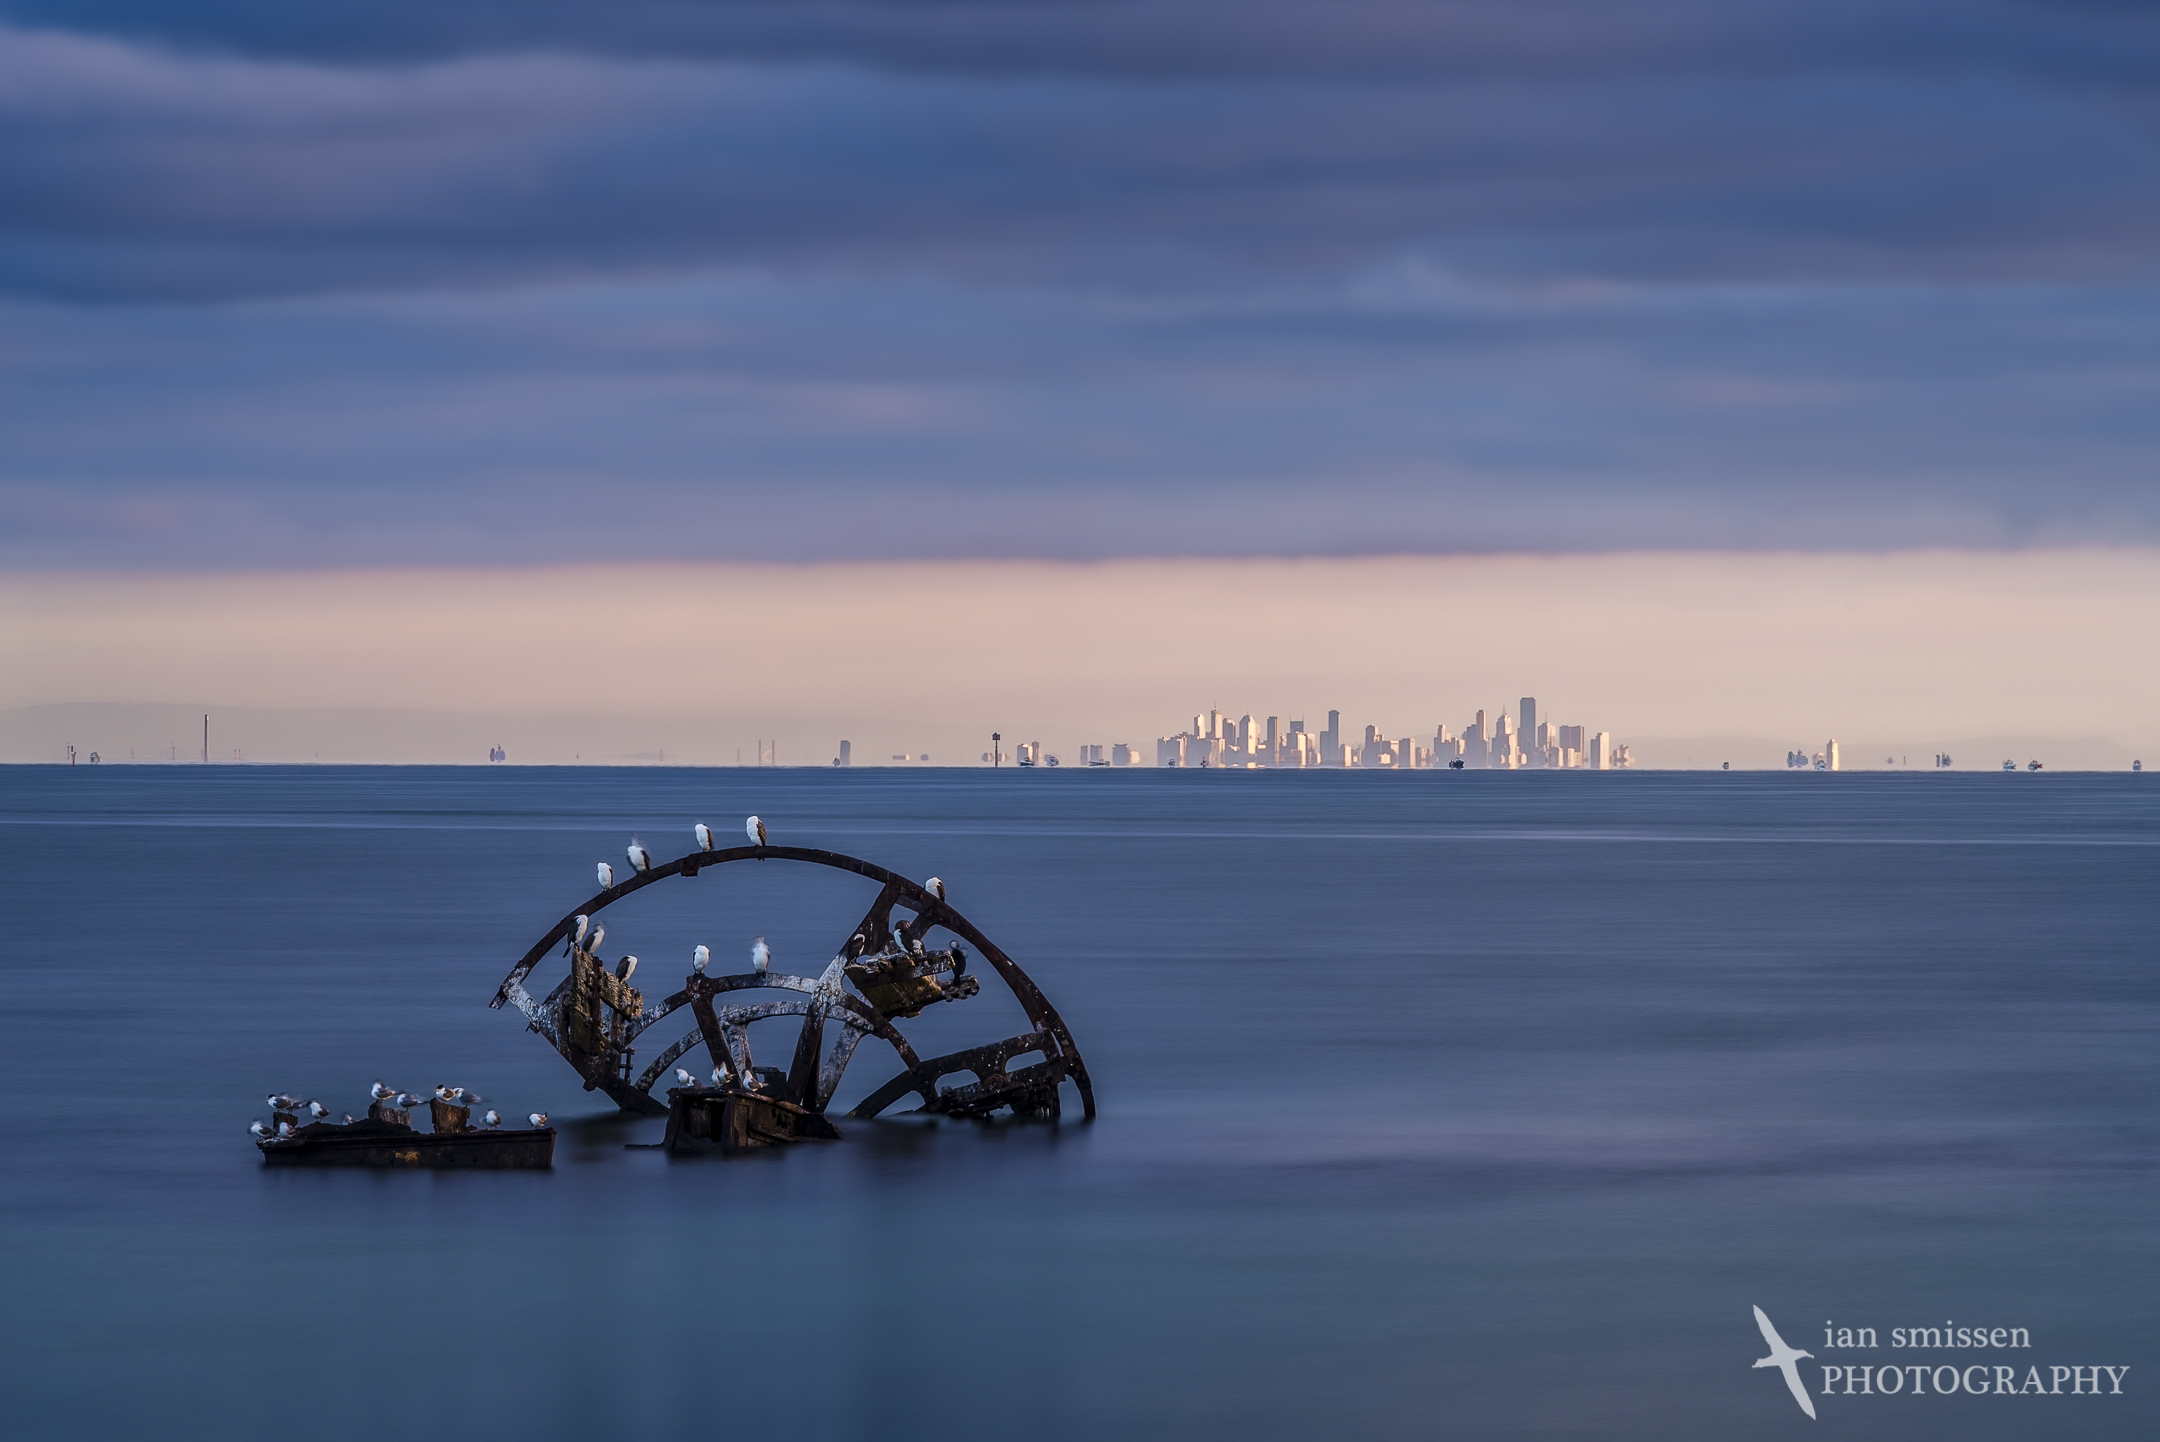 ISO 100, 200mm, 13 seconds at f/16, circular polariser +3-stop ND filters